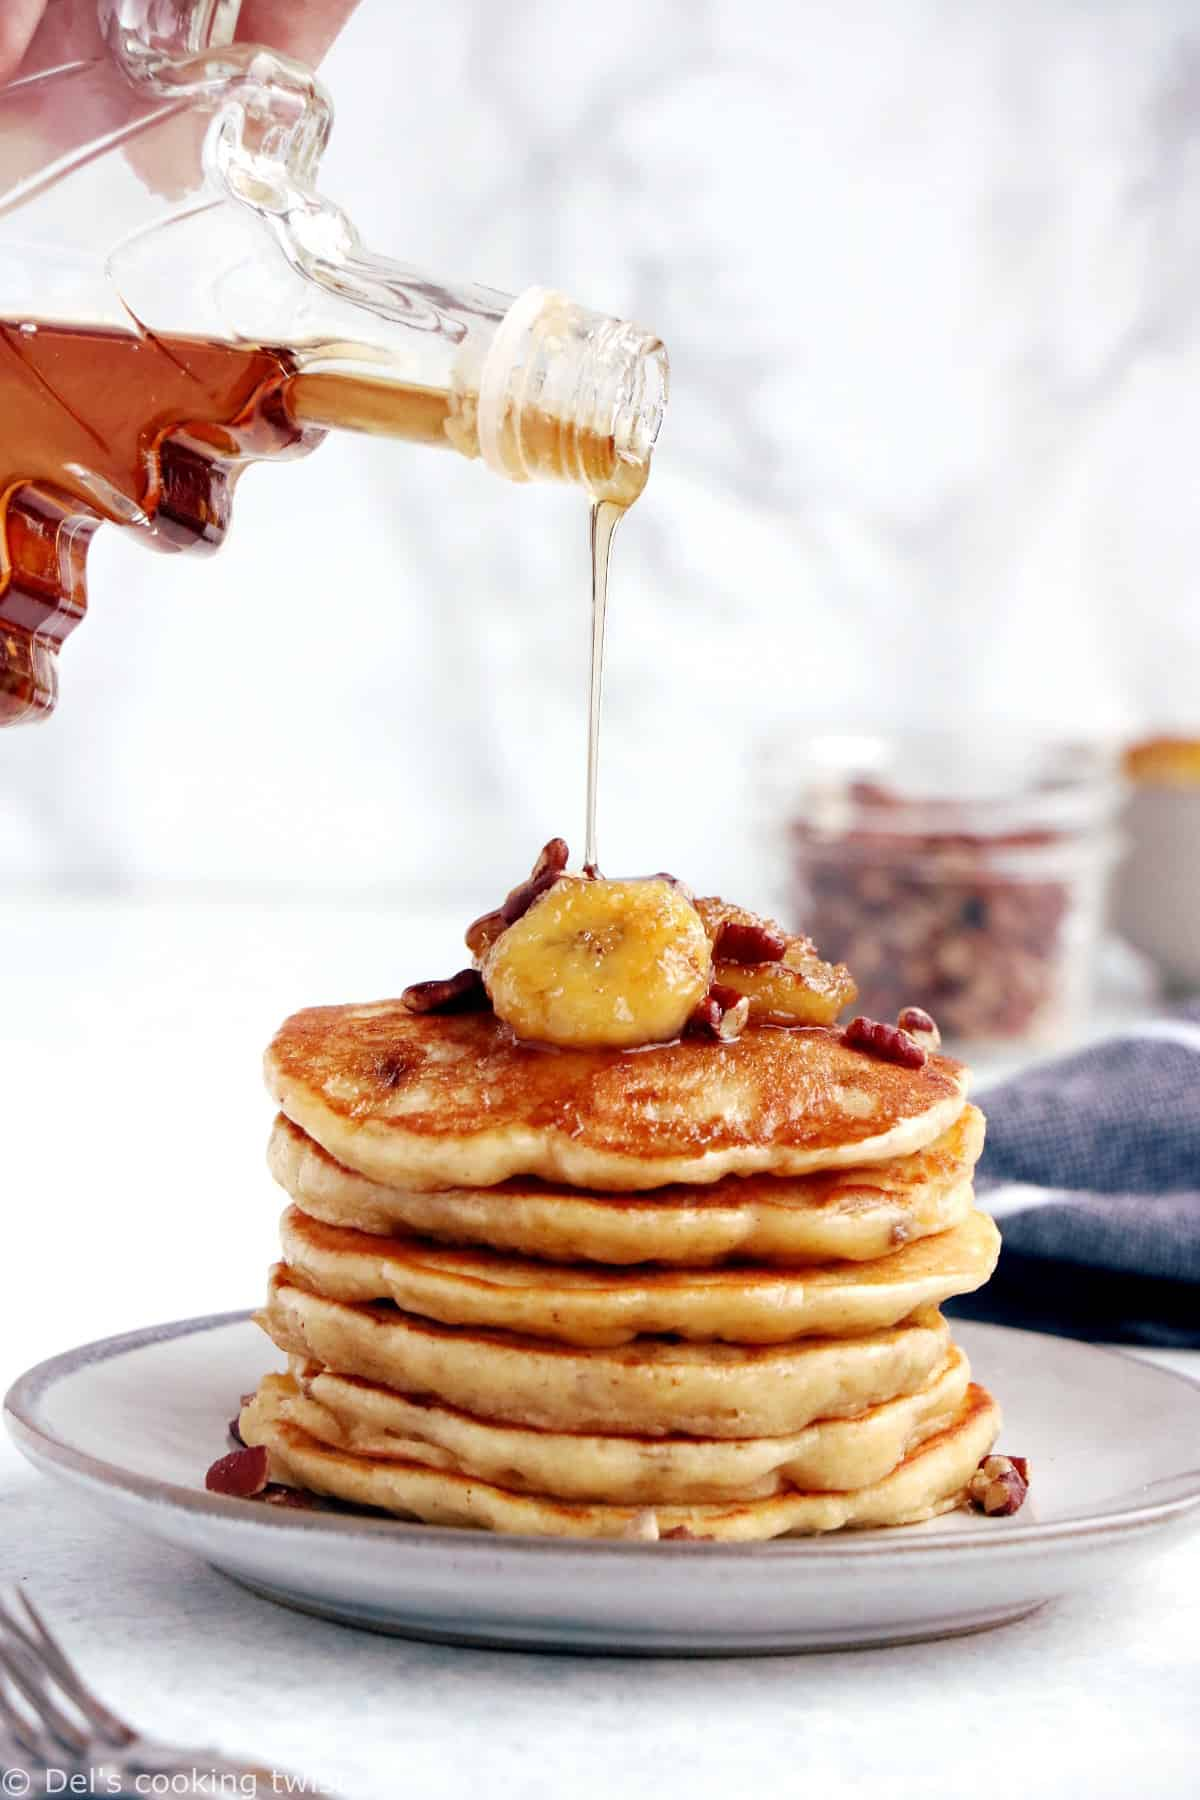 This easy fluffy banana pancake recipe yields generous, light, and airy pancakes, loaded with banana bread flavor.